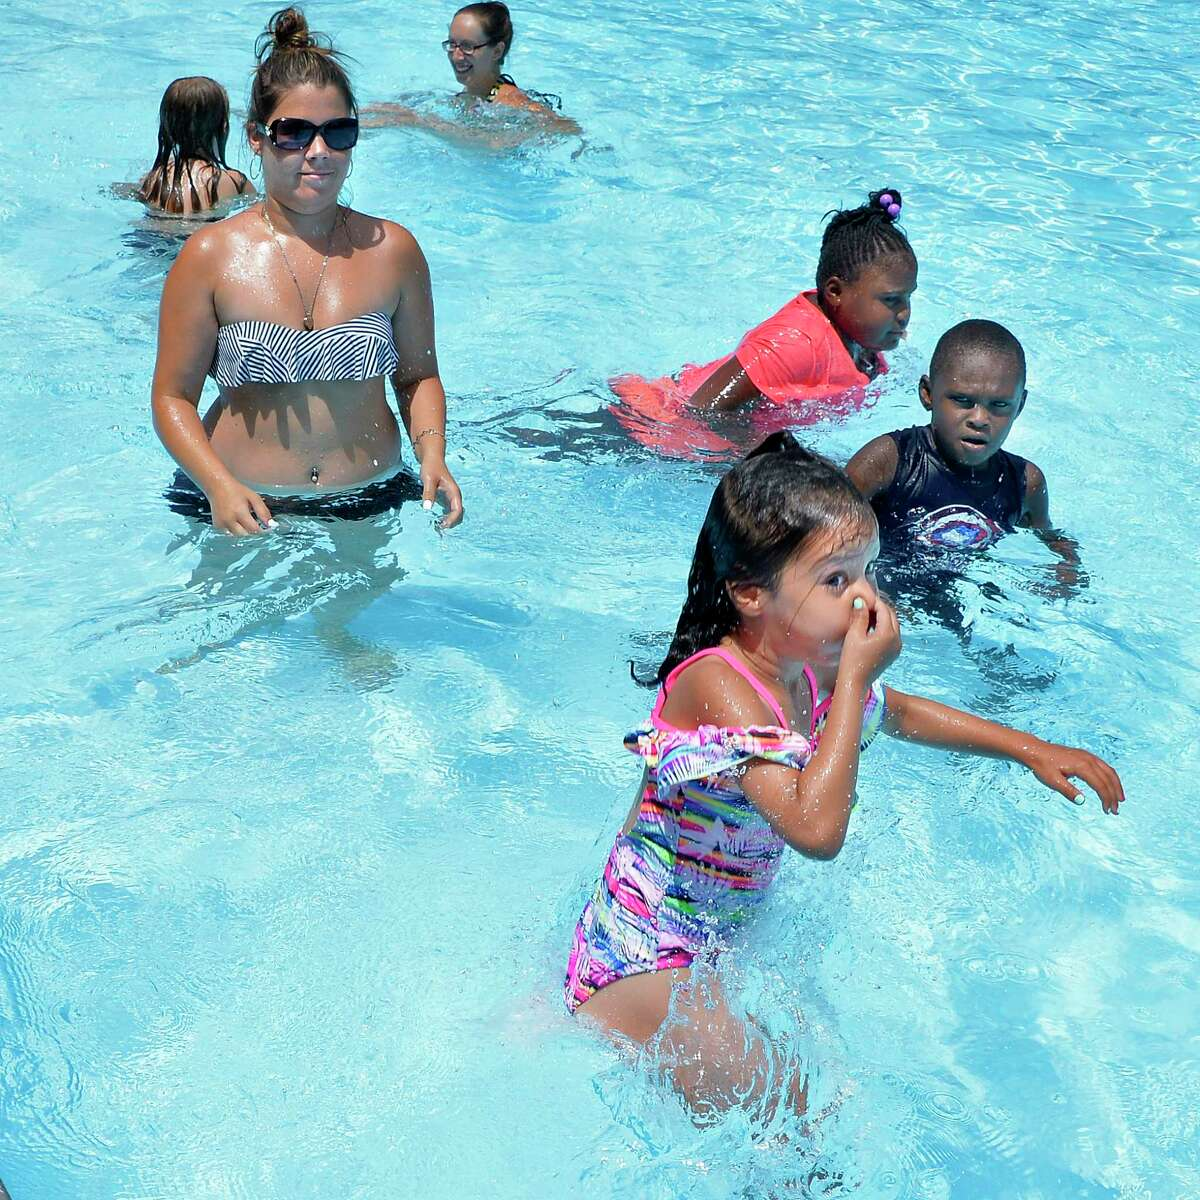 Tiffany Rosencrans keeps a close eye on her five-year-old daughter Aleeah Wertz as she jumps into Lansing Park Pool as her mother Tuesday July 3, 2018 in Cohoes, NY. (John Carl D'Annibale/Times Union)